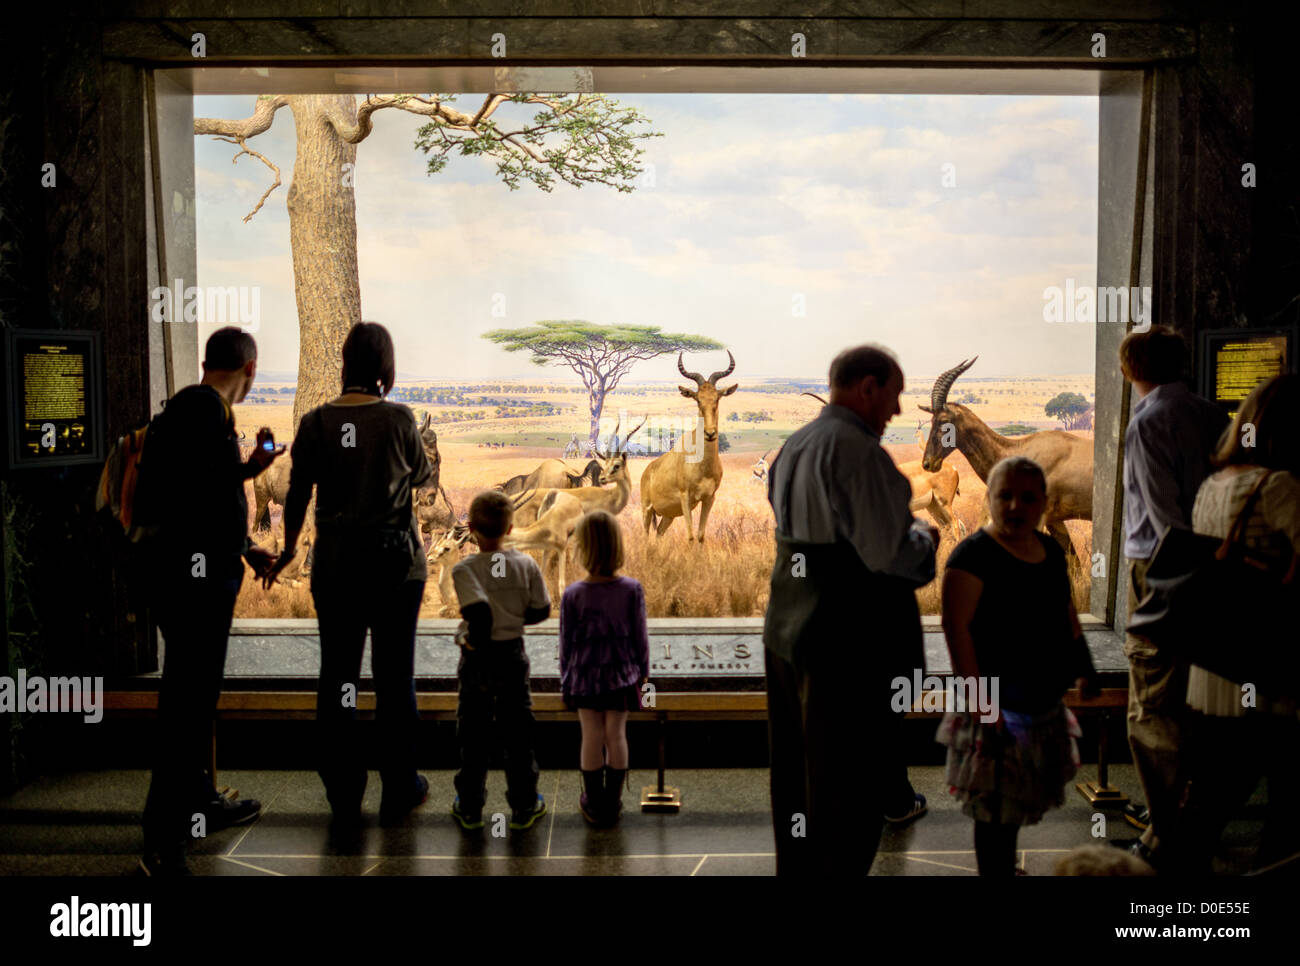 NEW YORK, NY - Serengeti Plains exhibit at the Museum of Natural History in New York's Upper West Side neighborhood, - Stock Image